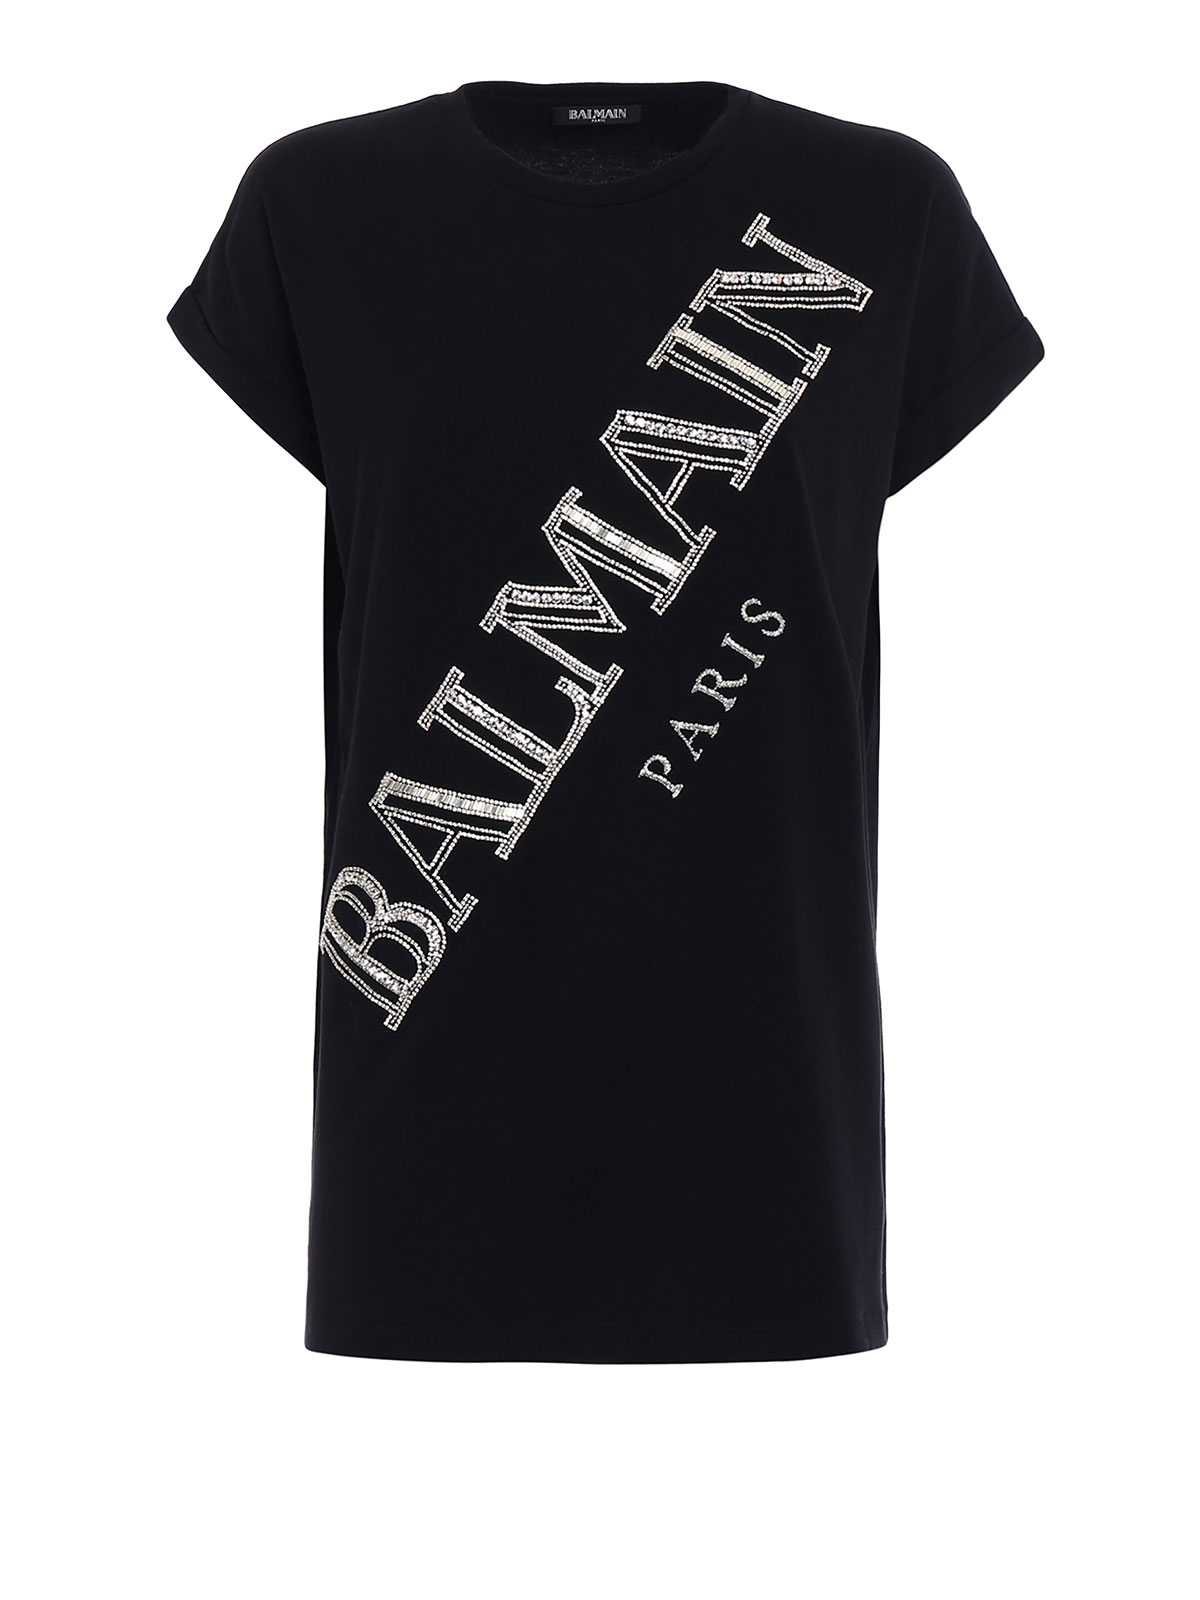 precious logo cotton t shirt by balmain t shirts ikrix. Black Bedroom Furniture Sets. Home Design Ideas